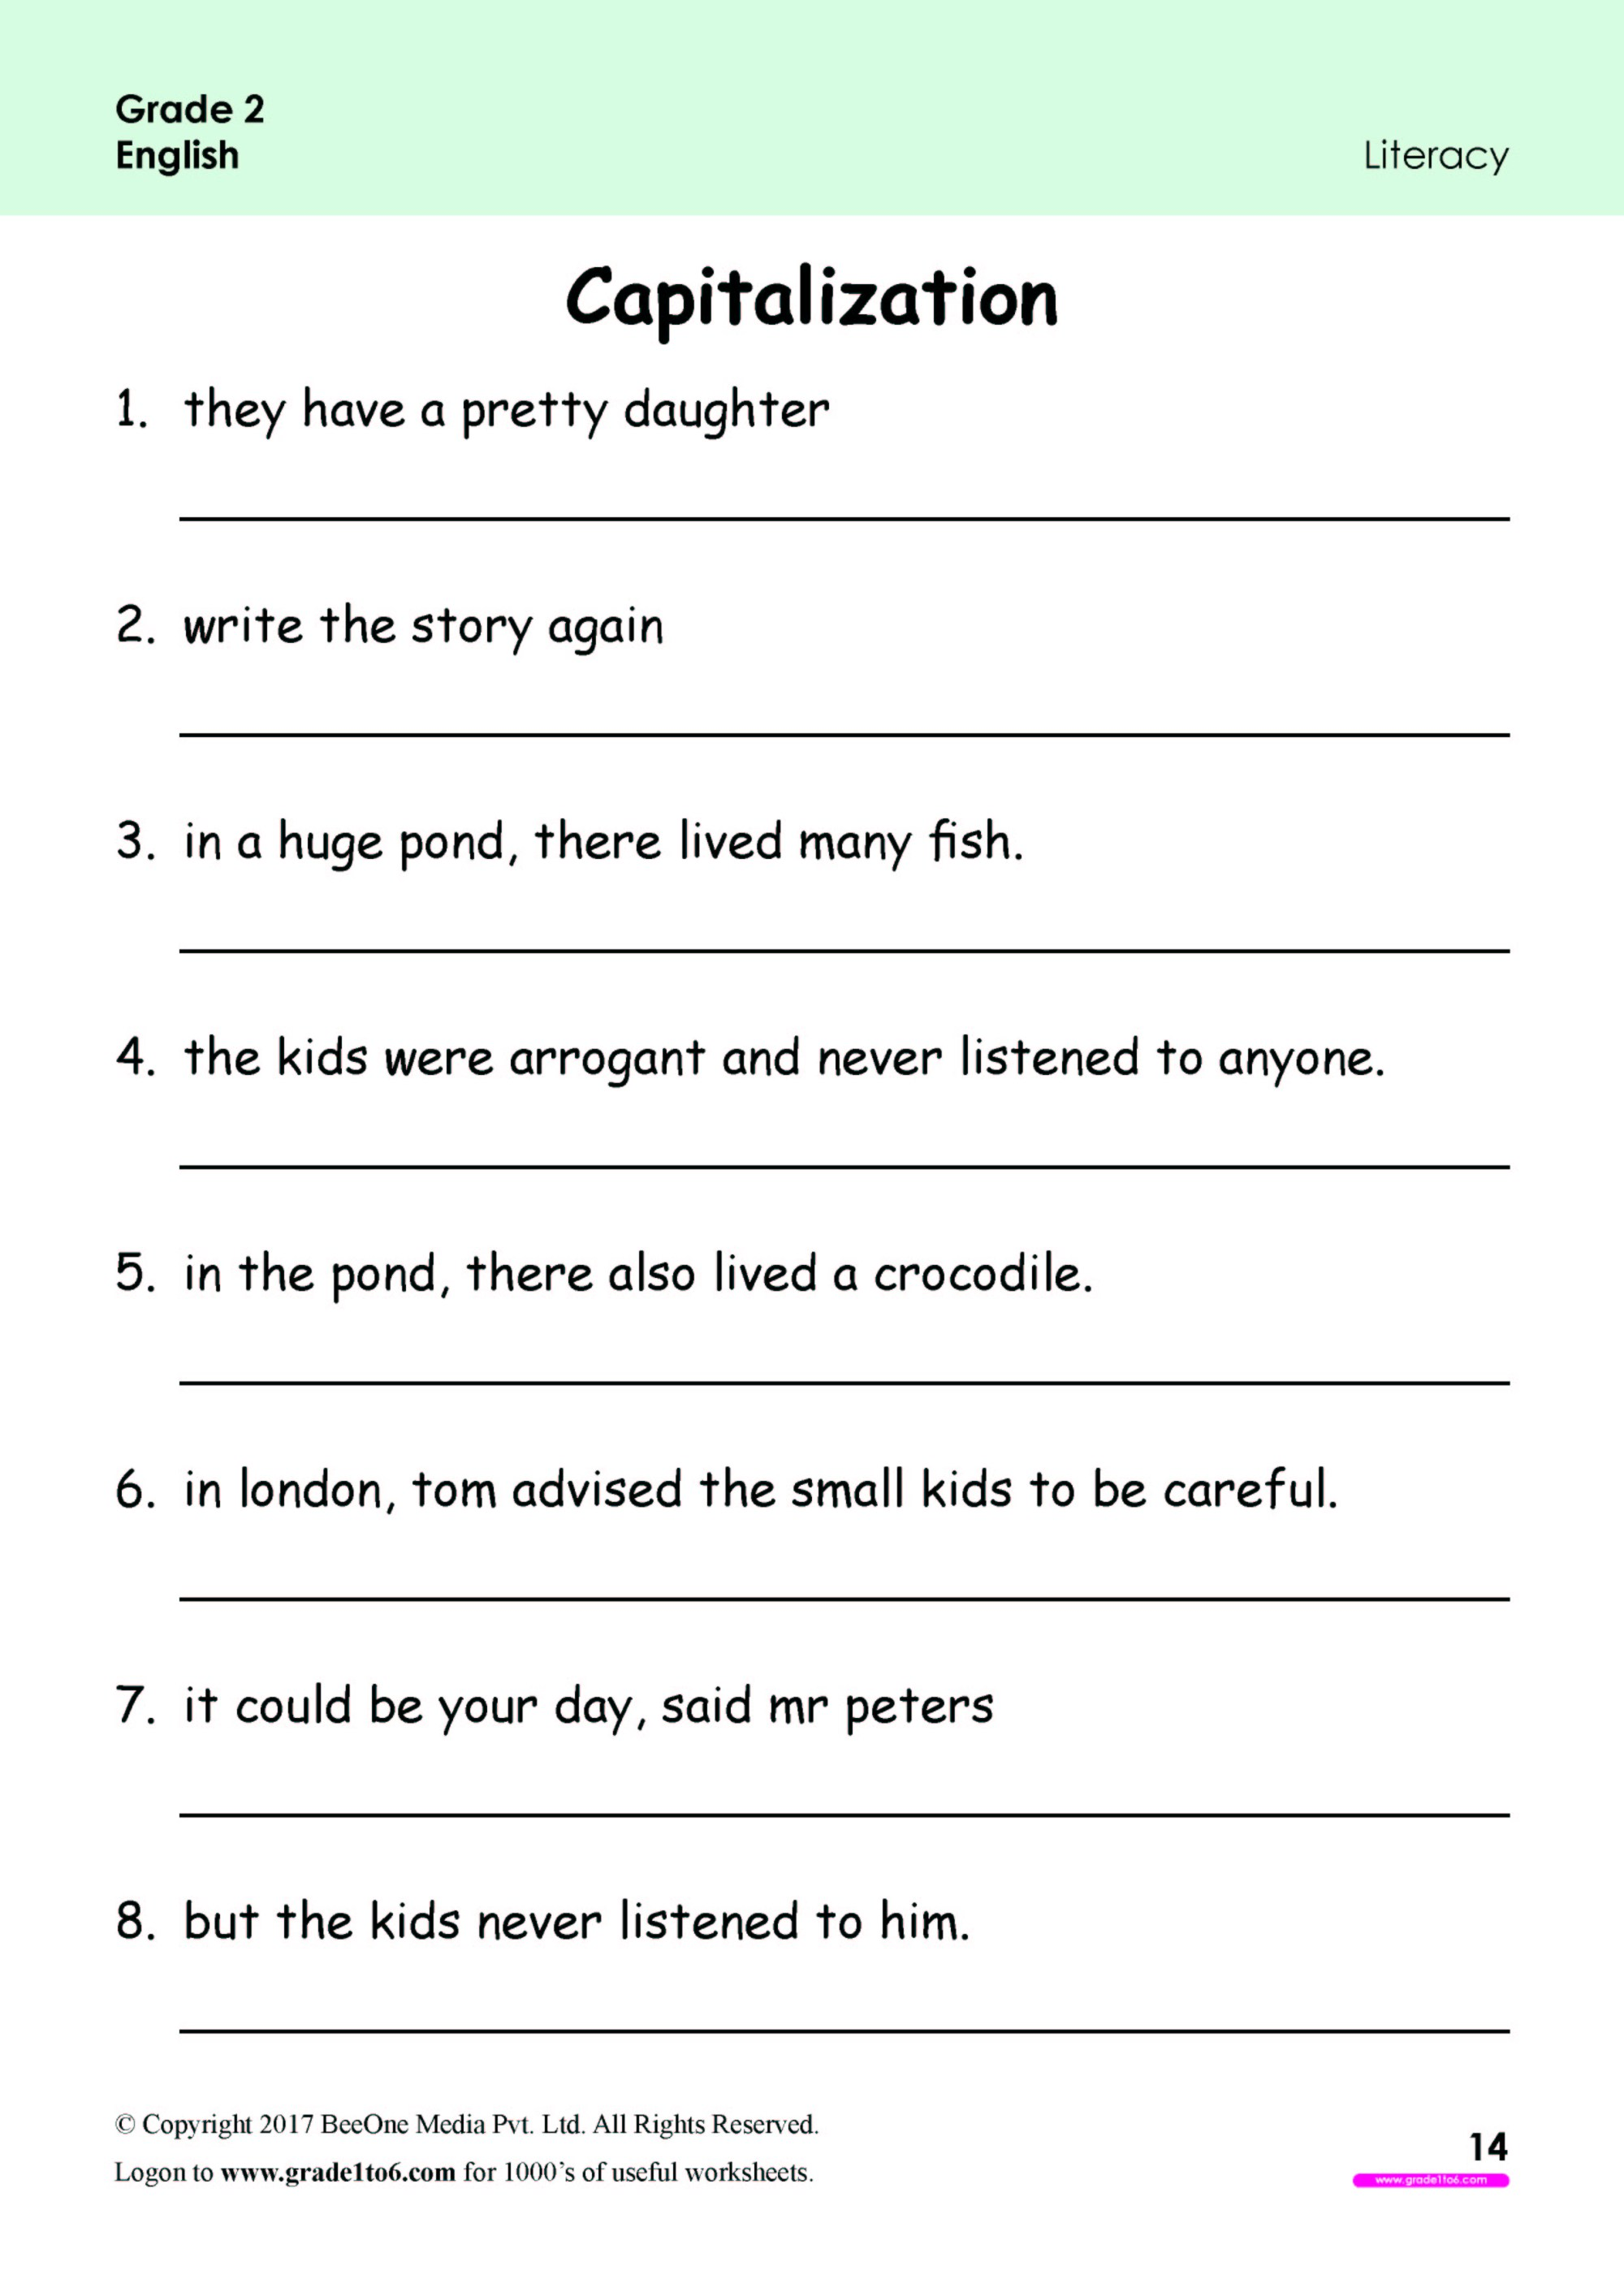 hight resolution of Capitalization Worksheets for Grade 2 www.grade1to6.com